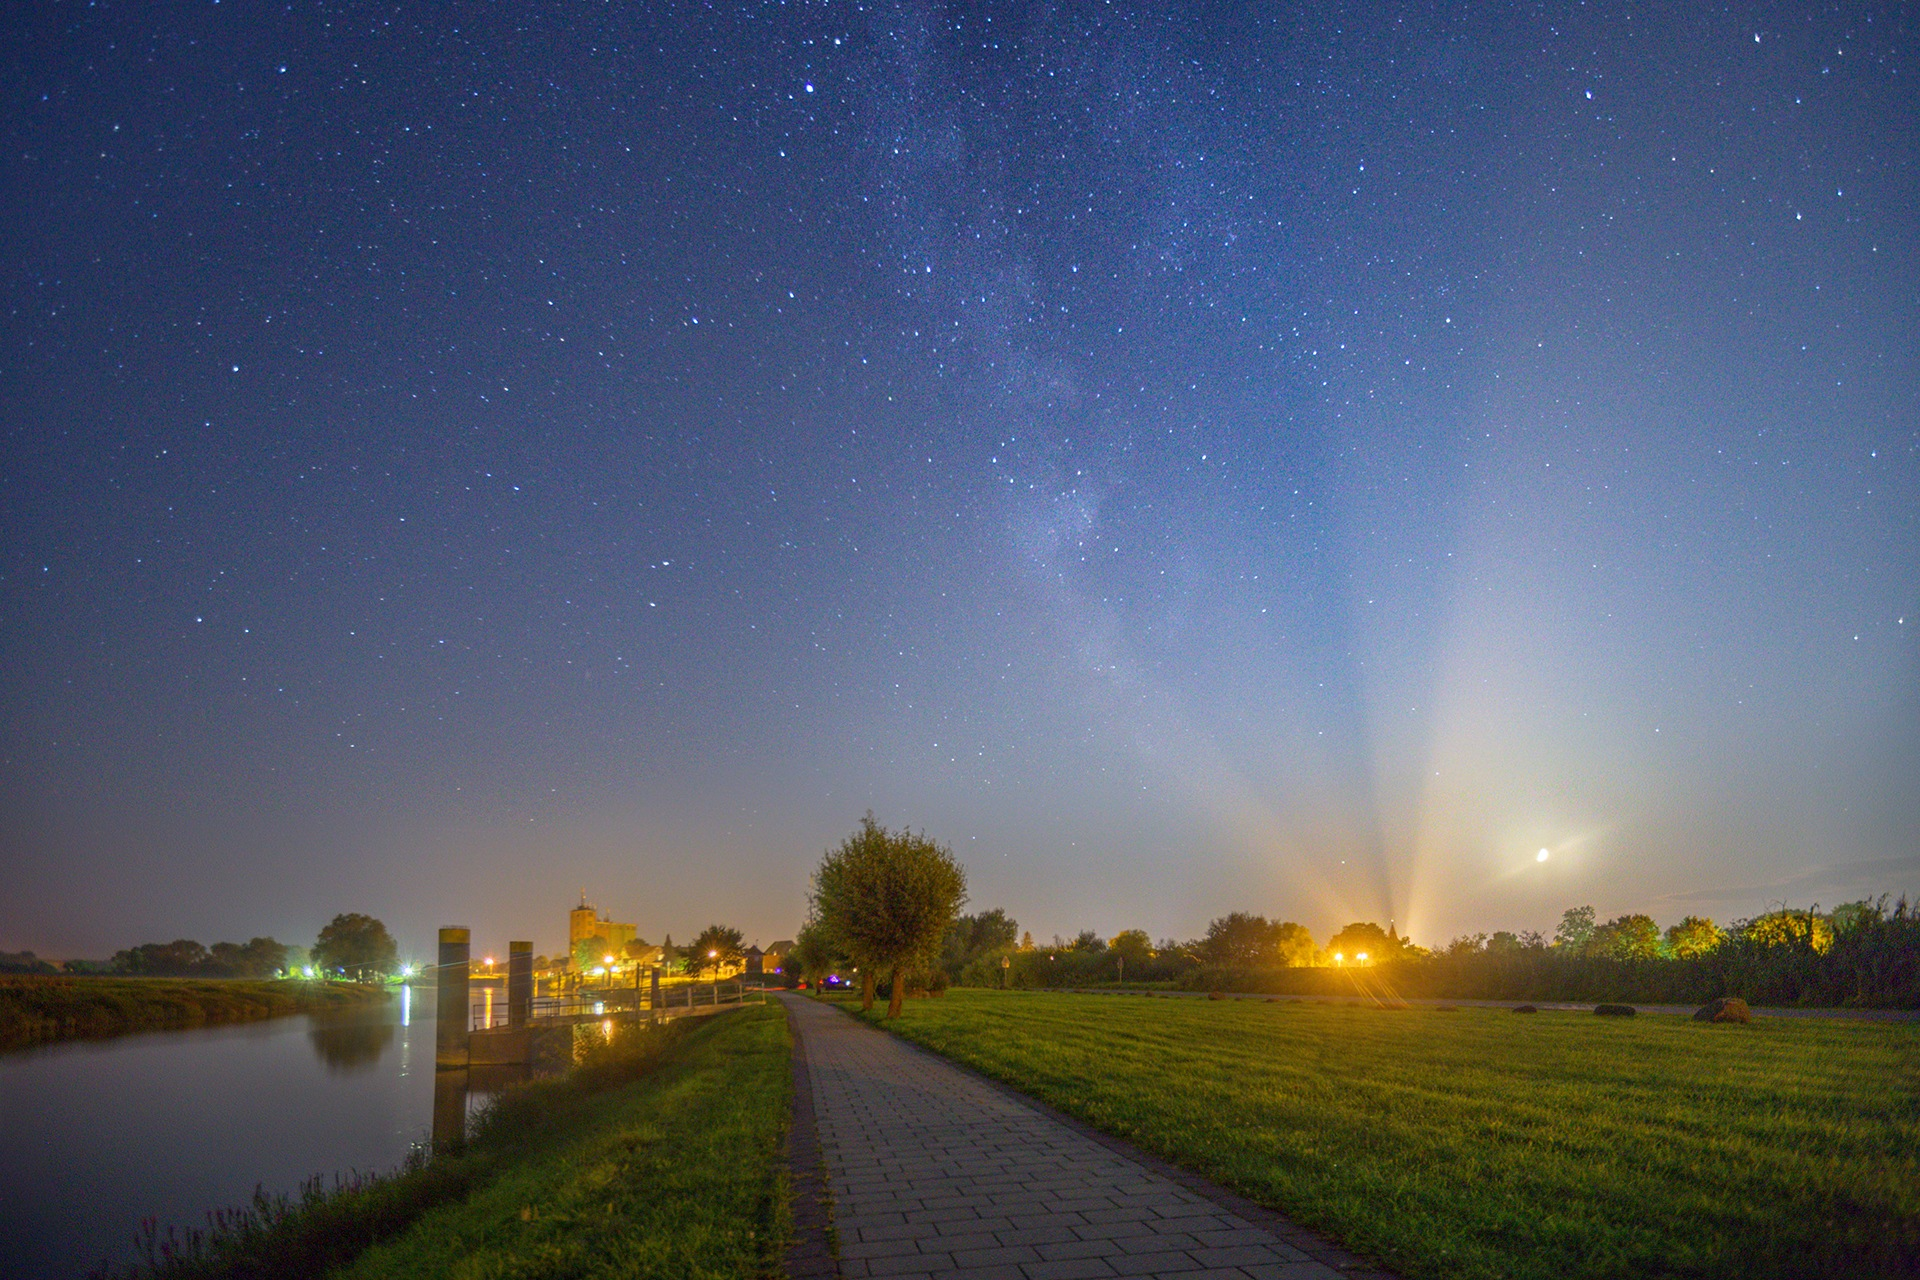 Starry sky over Bleckede 2 by Maik Richter Photography